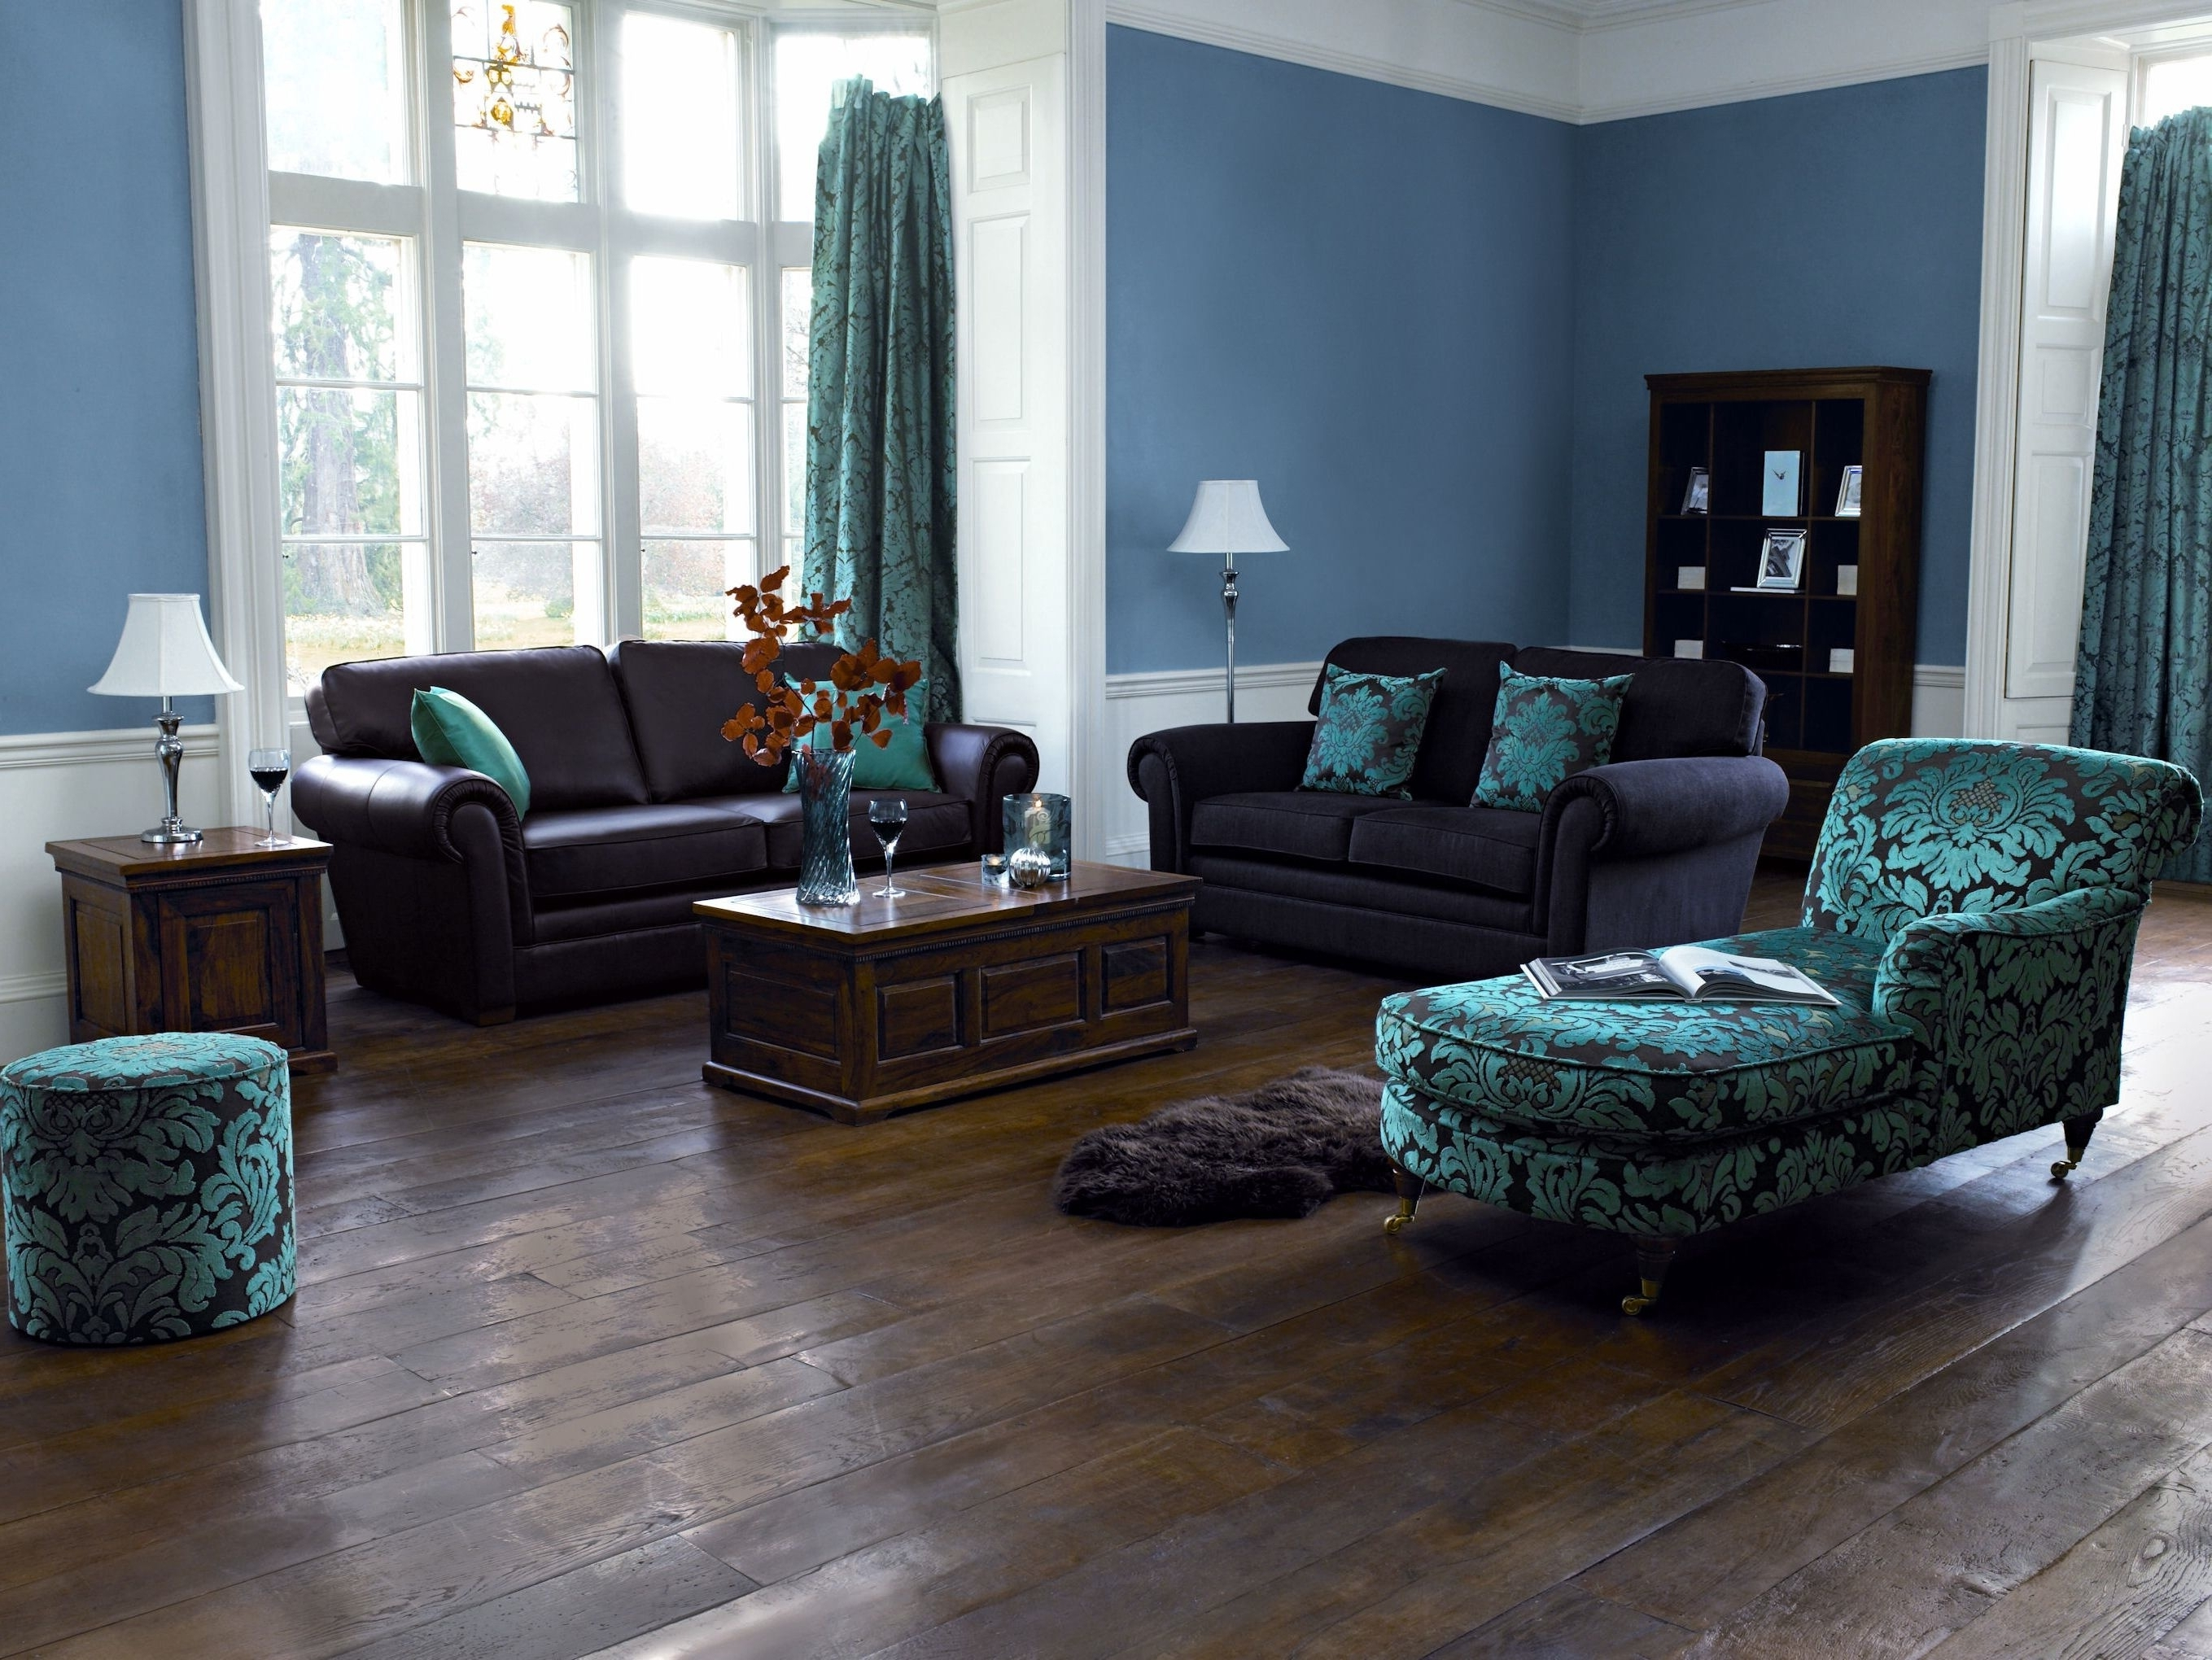 Chaise Lounges For Living Room Regarding Latest Luxury Chaise Lounge Chairs For Living Room X1 # (View 6 of 15)